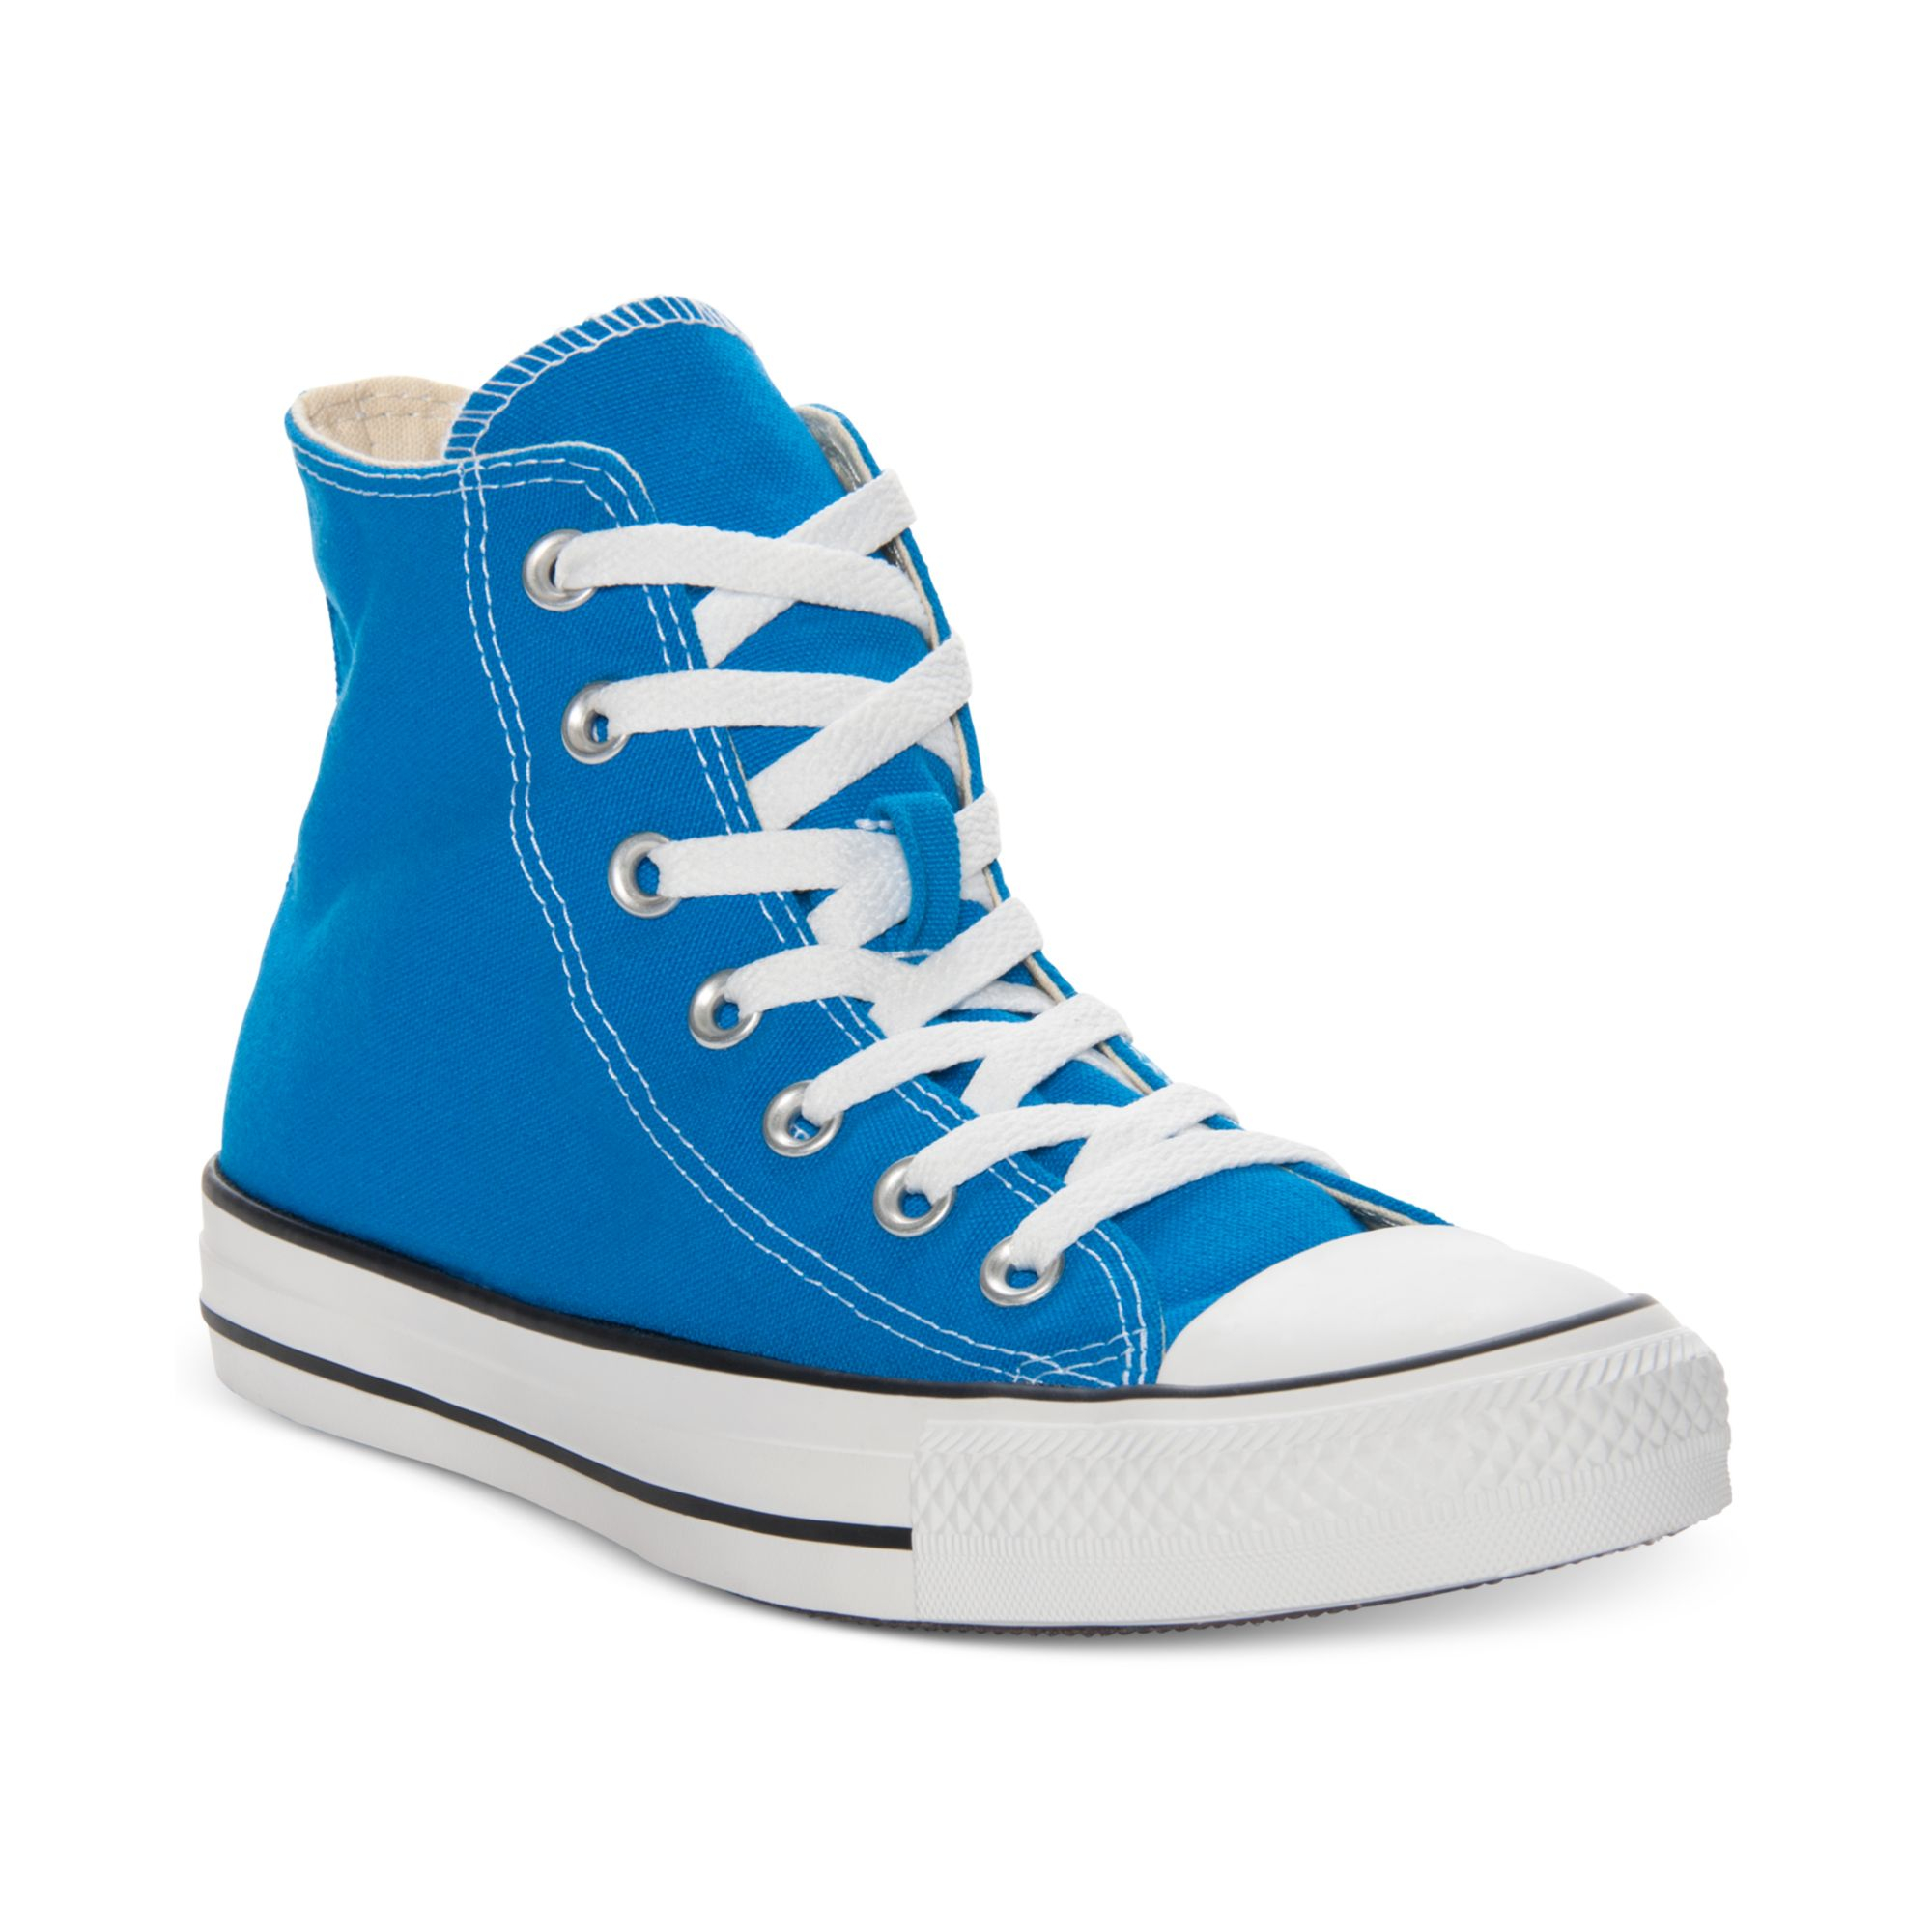 74ff78a1d43270 Lyst - Converse Chuck Taylor Hi Top Casual Sneakers in Blue for Men